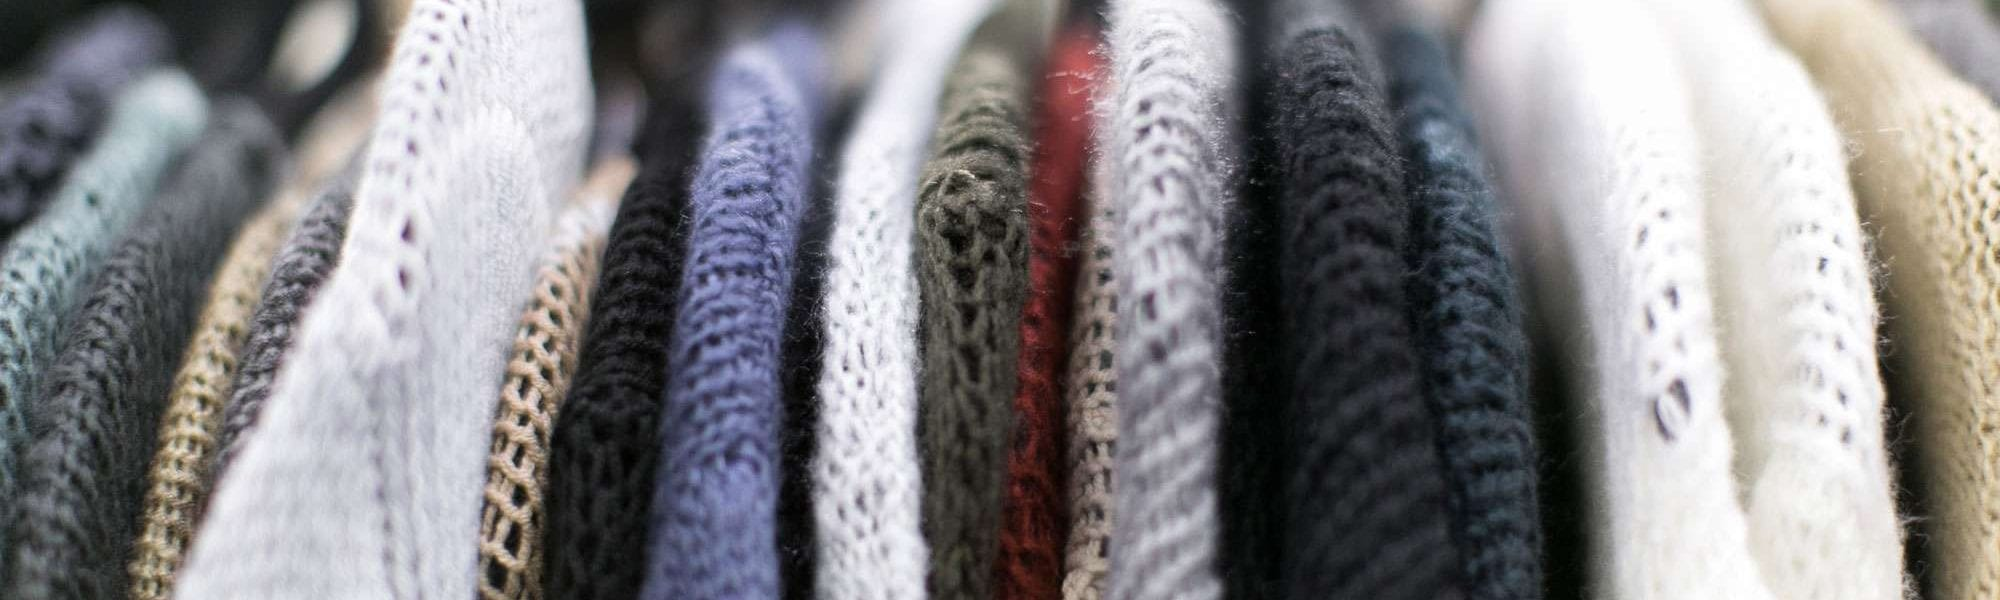 A close-up of sweaters on a clothing rack